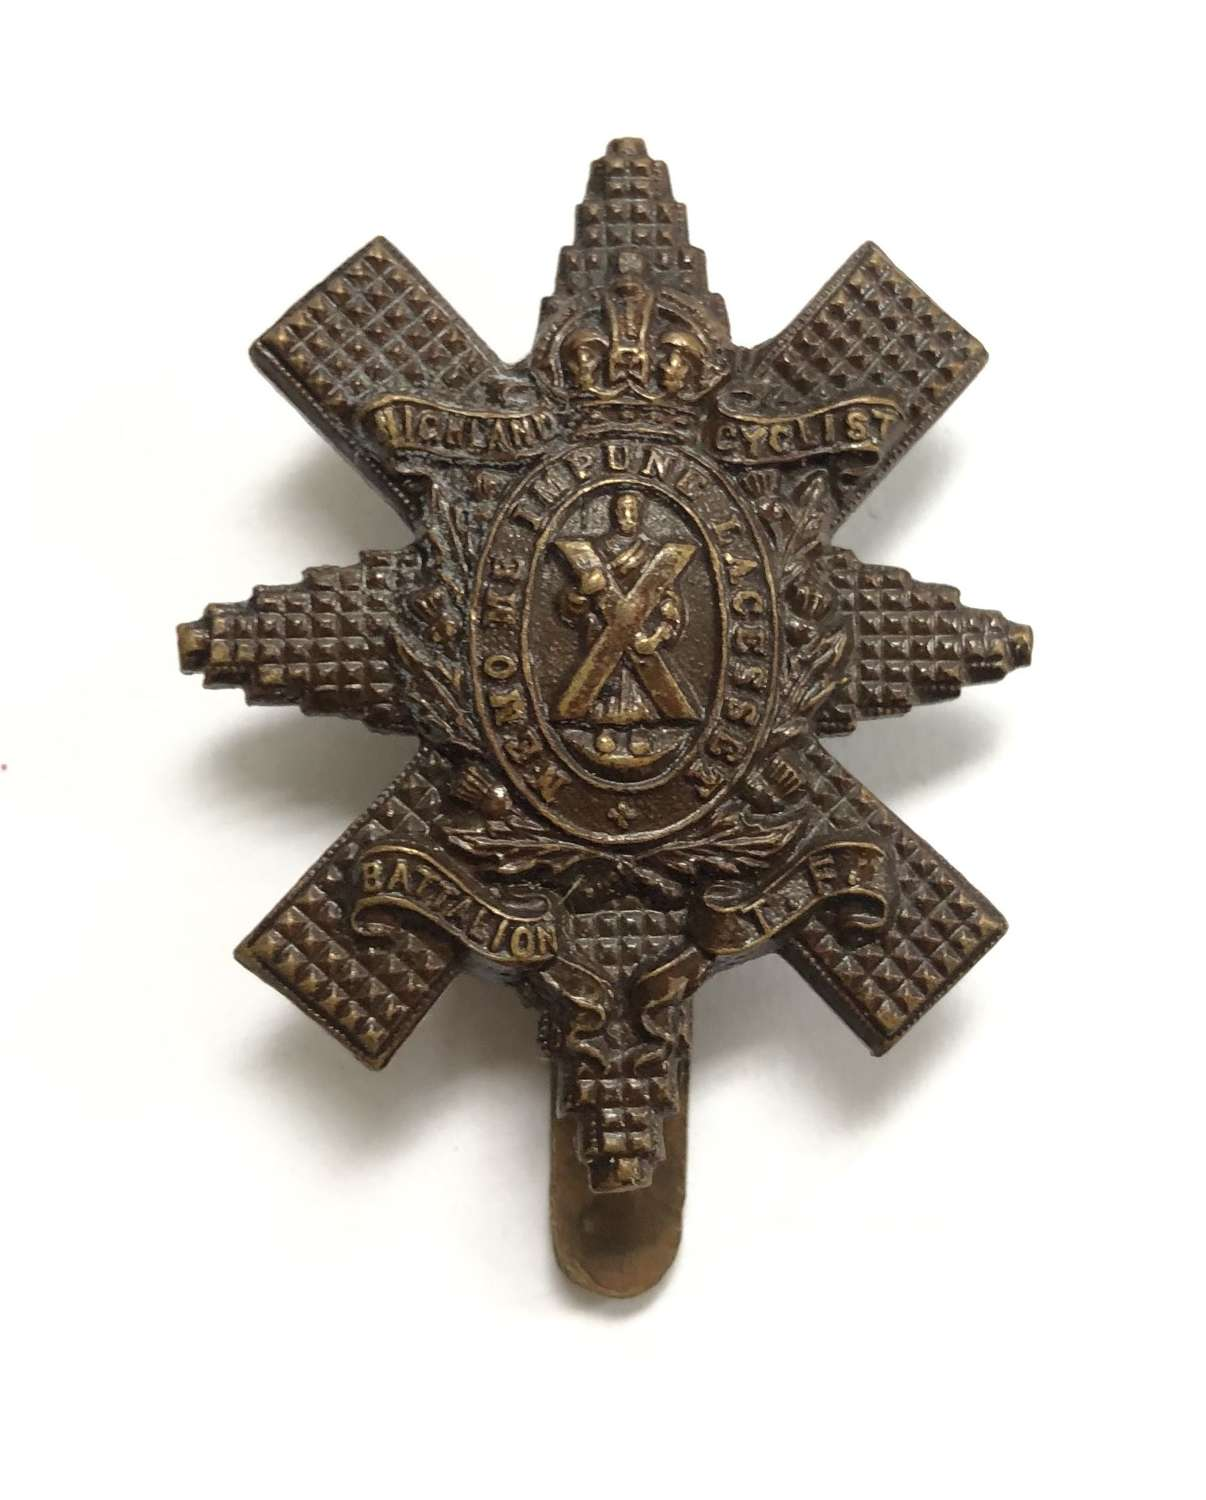 Highland Cyclist Battalion scarce OSD bronze cap badge c1909-19